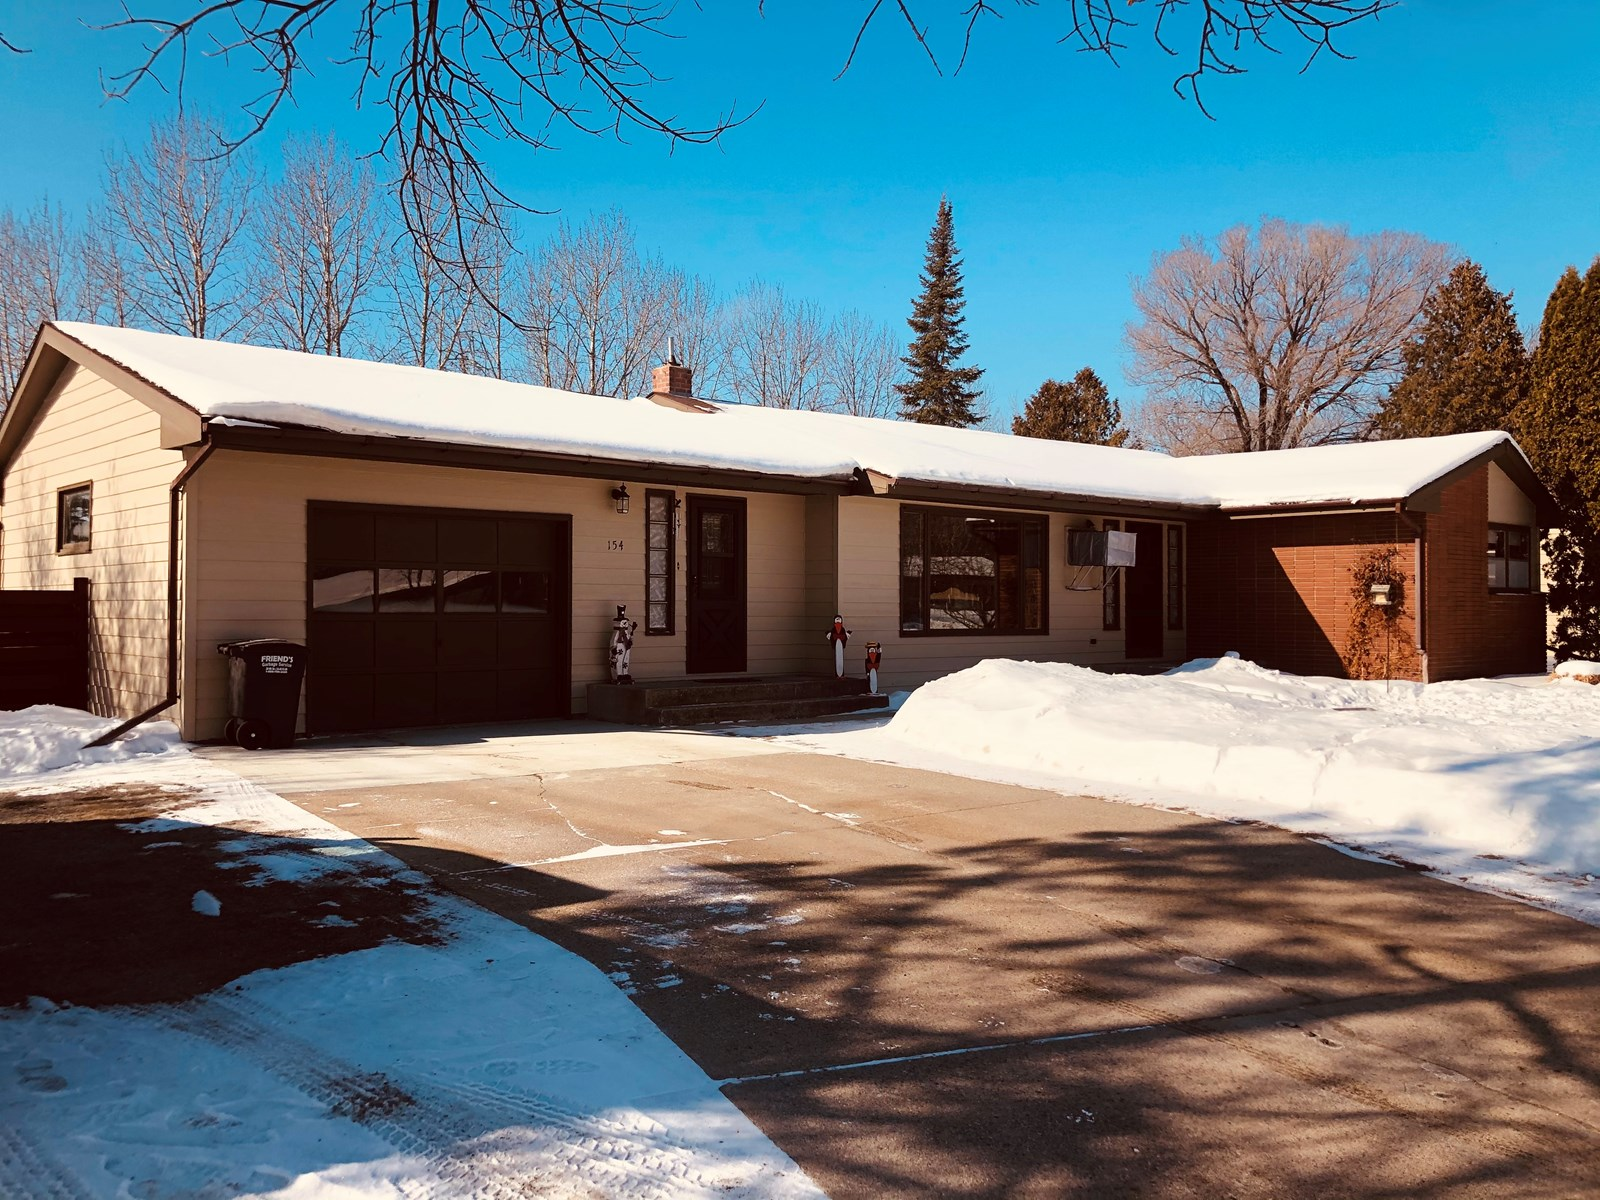 Home in town for sale in Int'l Falls MN